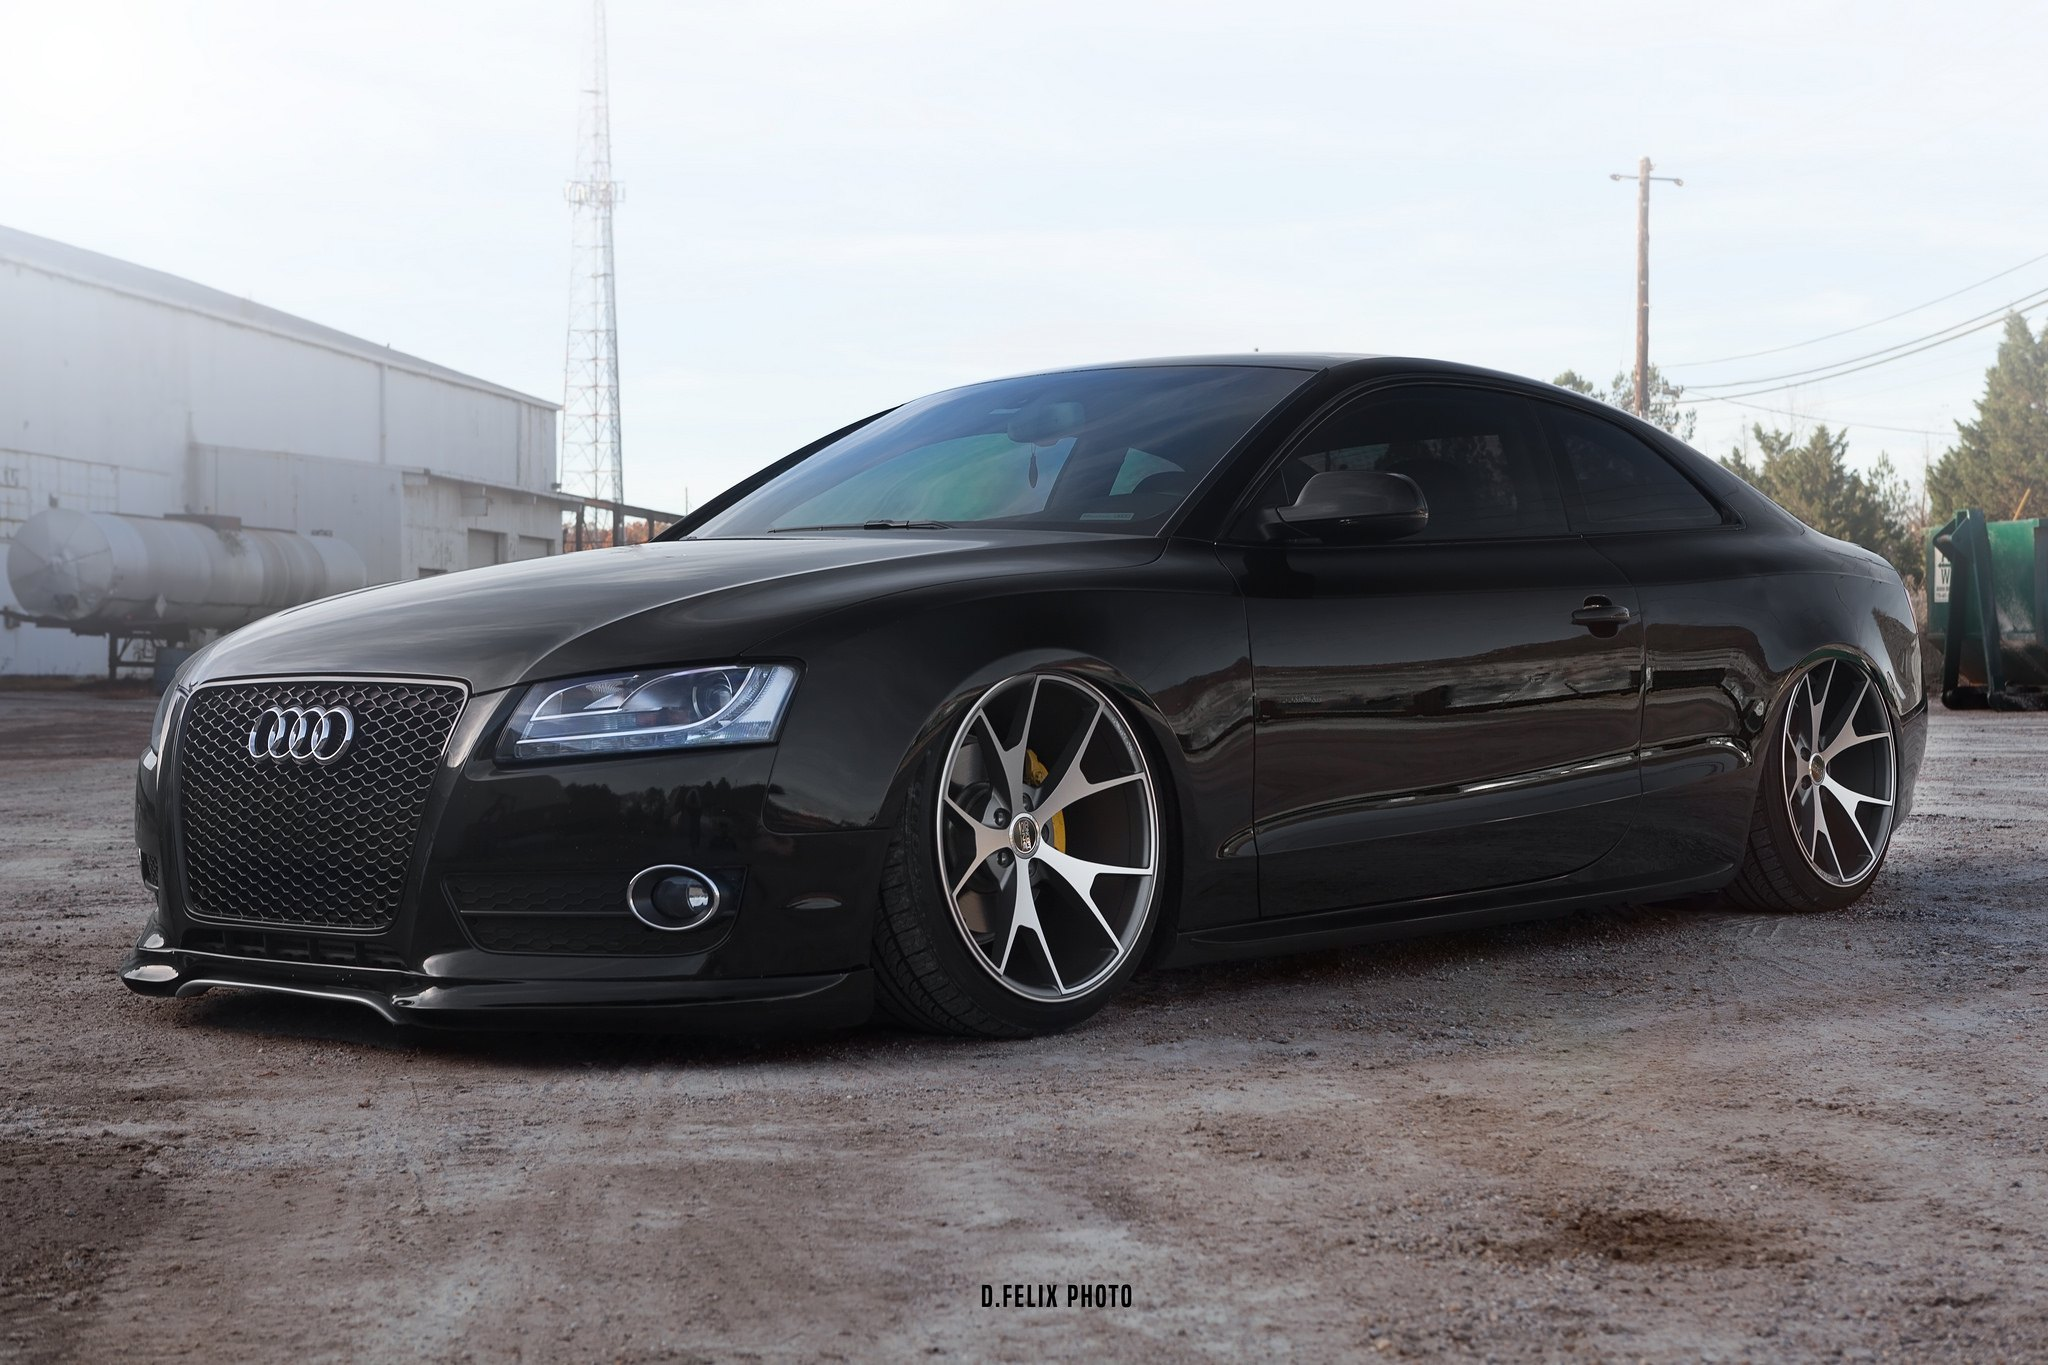 Updated Face of Black Audi A5 with Custom Mesh Grille ...  Updated Face of...